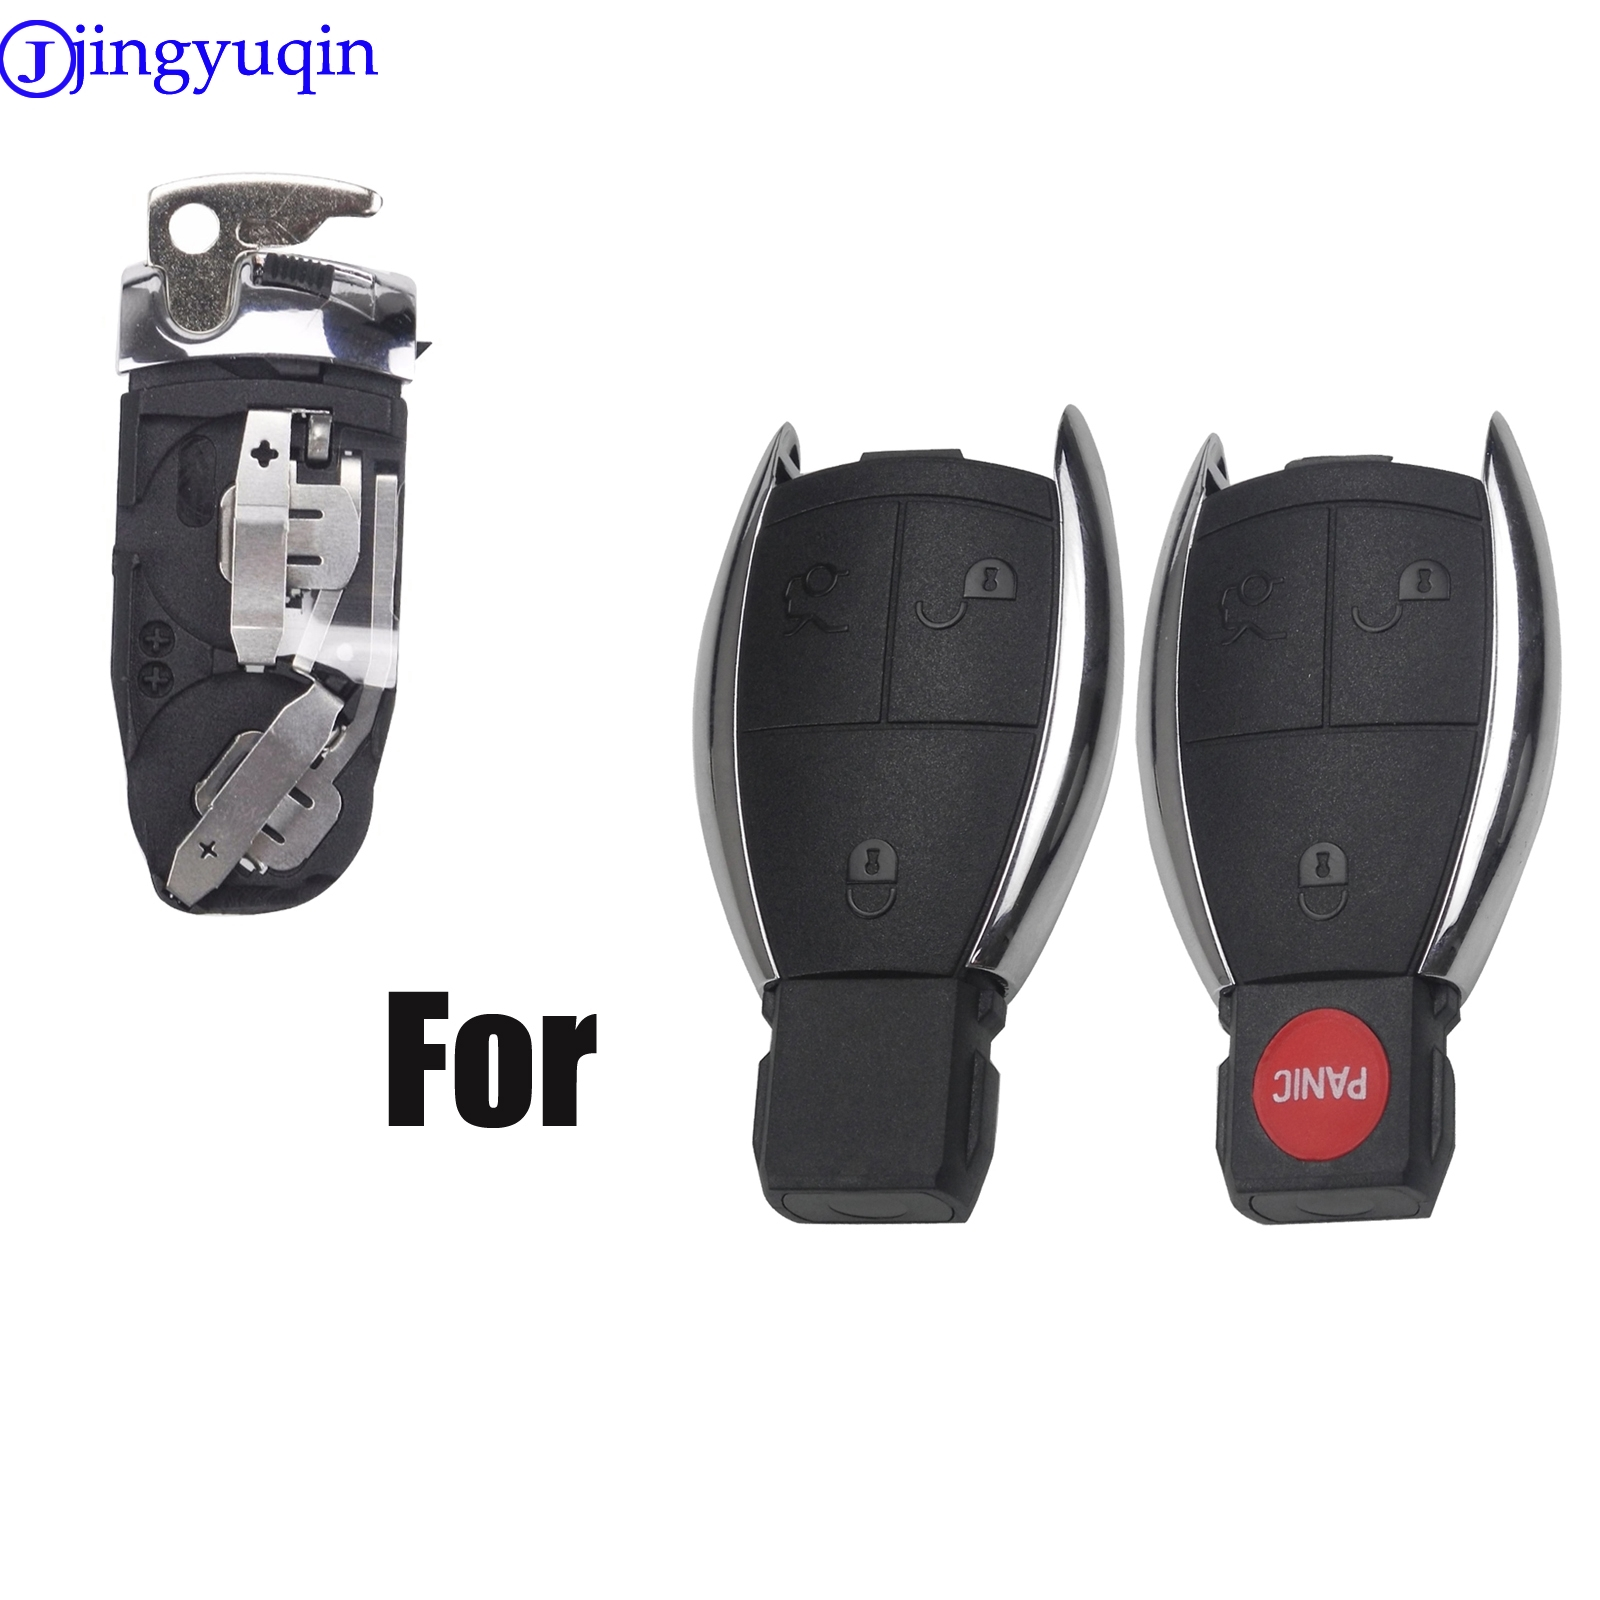 jingyuqin Battery Holder With Small <font><b>Key</b></font> Shell Fob For <font><b>Mercedes</b></font> For Benz A B C E S CL CLS CLA CLK <font><b>W203</b></font> W204 W205 W210 W211 W212 image